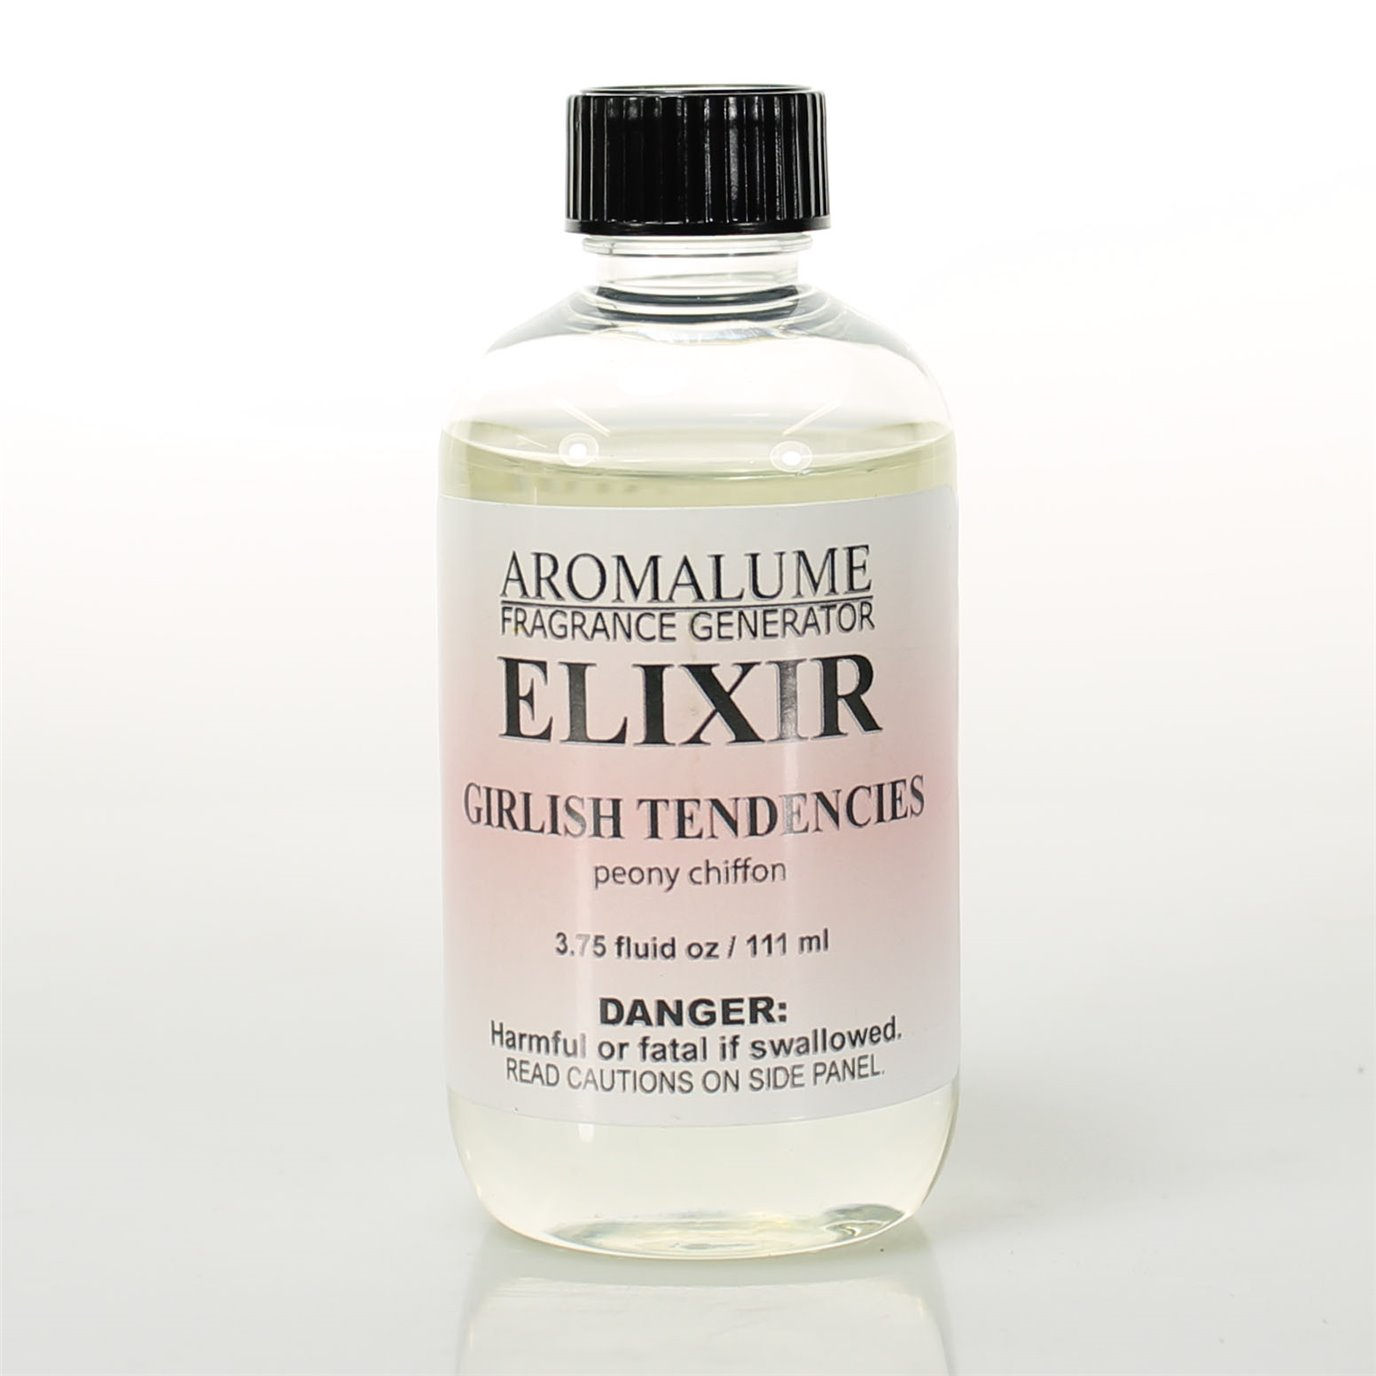 La Tee Da AromaLume Refill Elixir Fragrance Girlish Tendencies